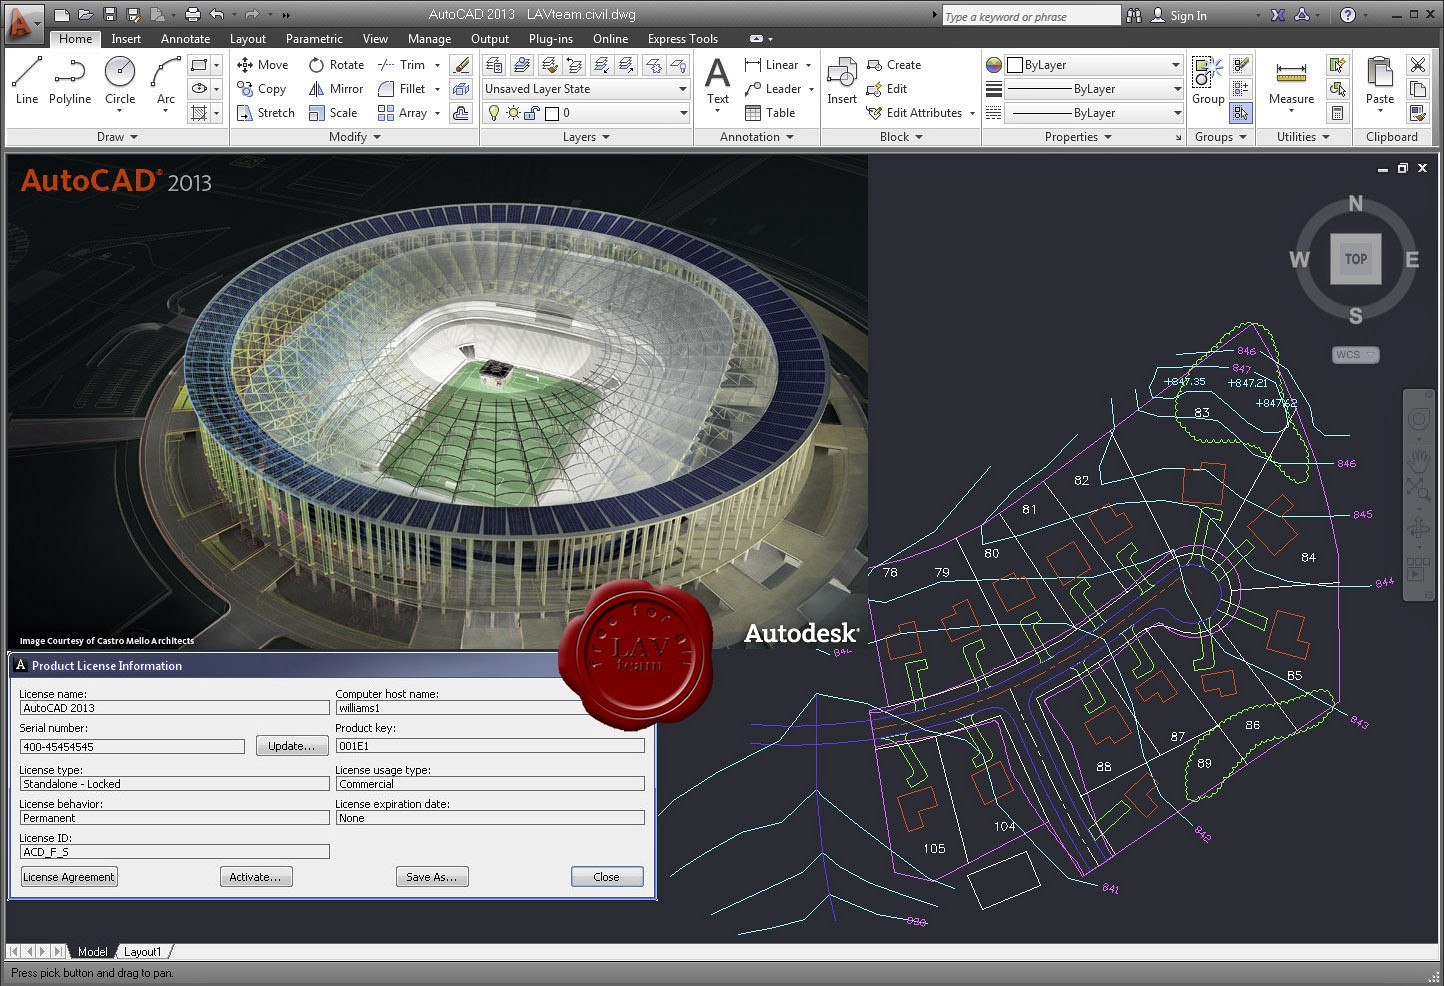 download autocad 2016 full crack fshare 64bit